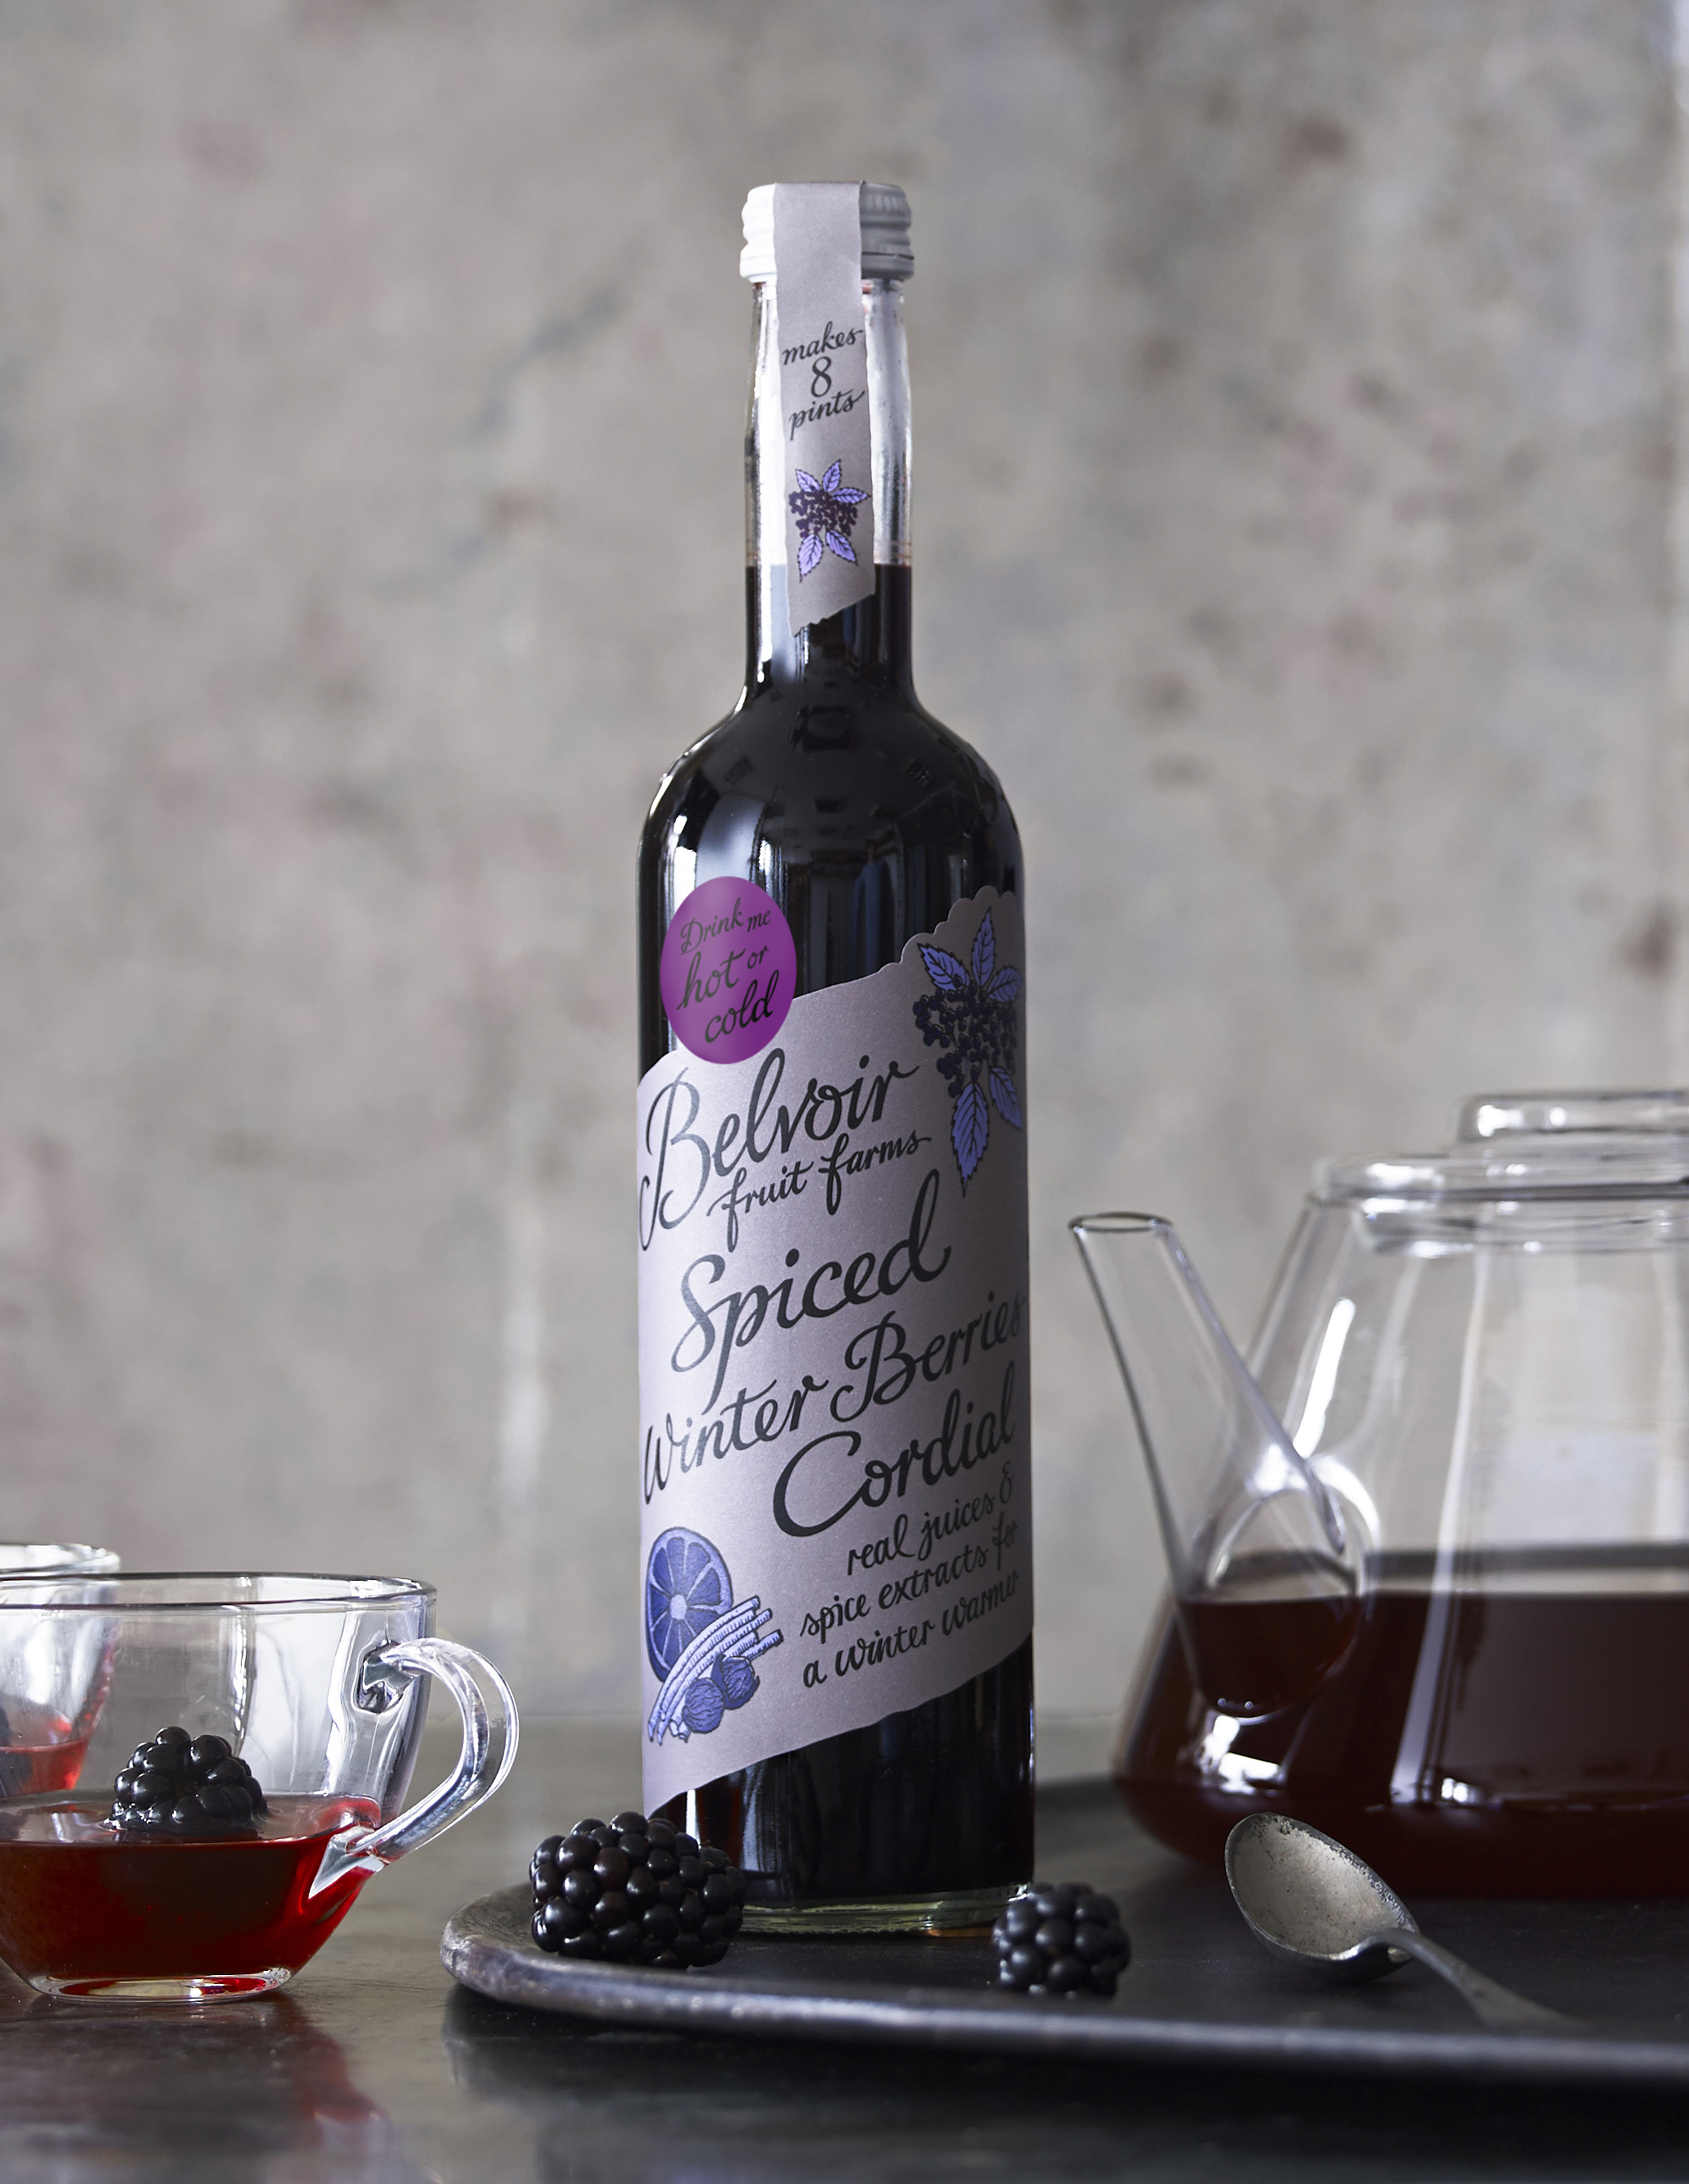 Spiced Winter Berries Cordial by Belvoir - NON-ALCOHOLIC WINTER WARMER DRINKS